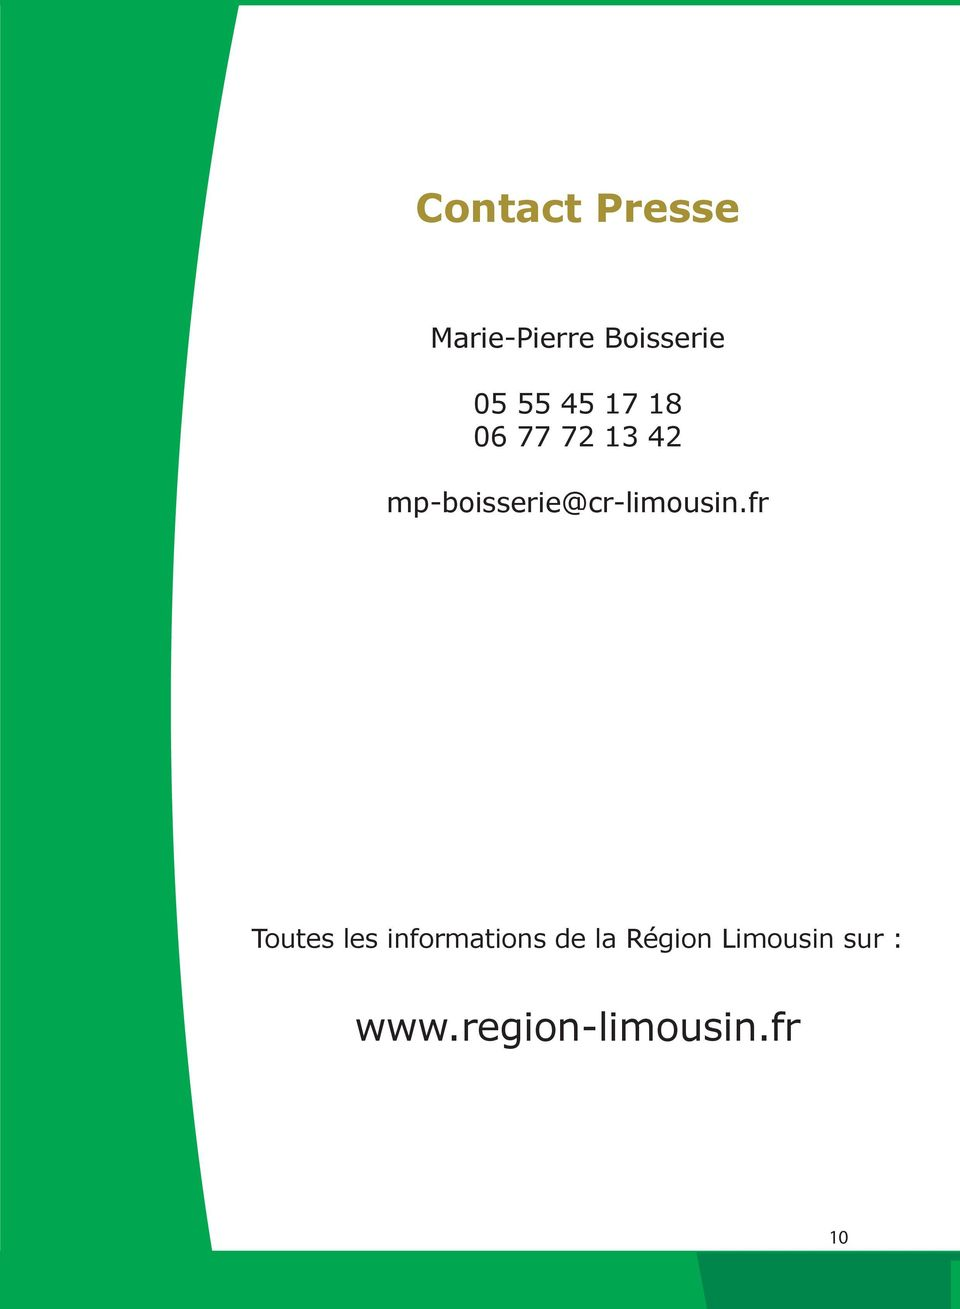 mp-boisserie@cr-limousin.